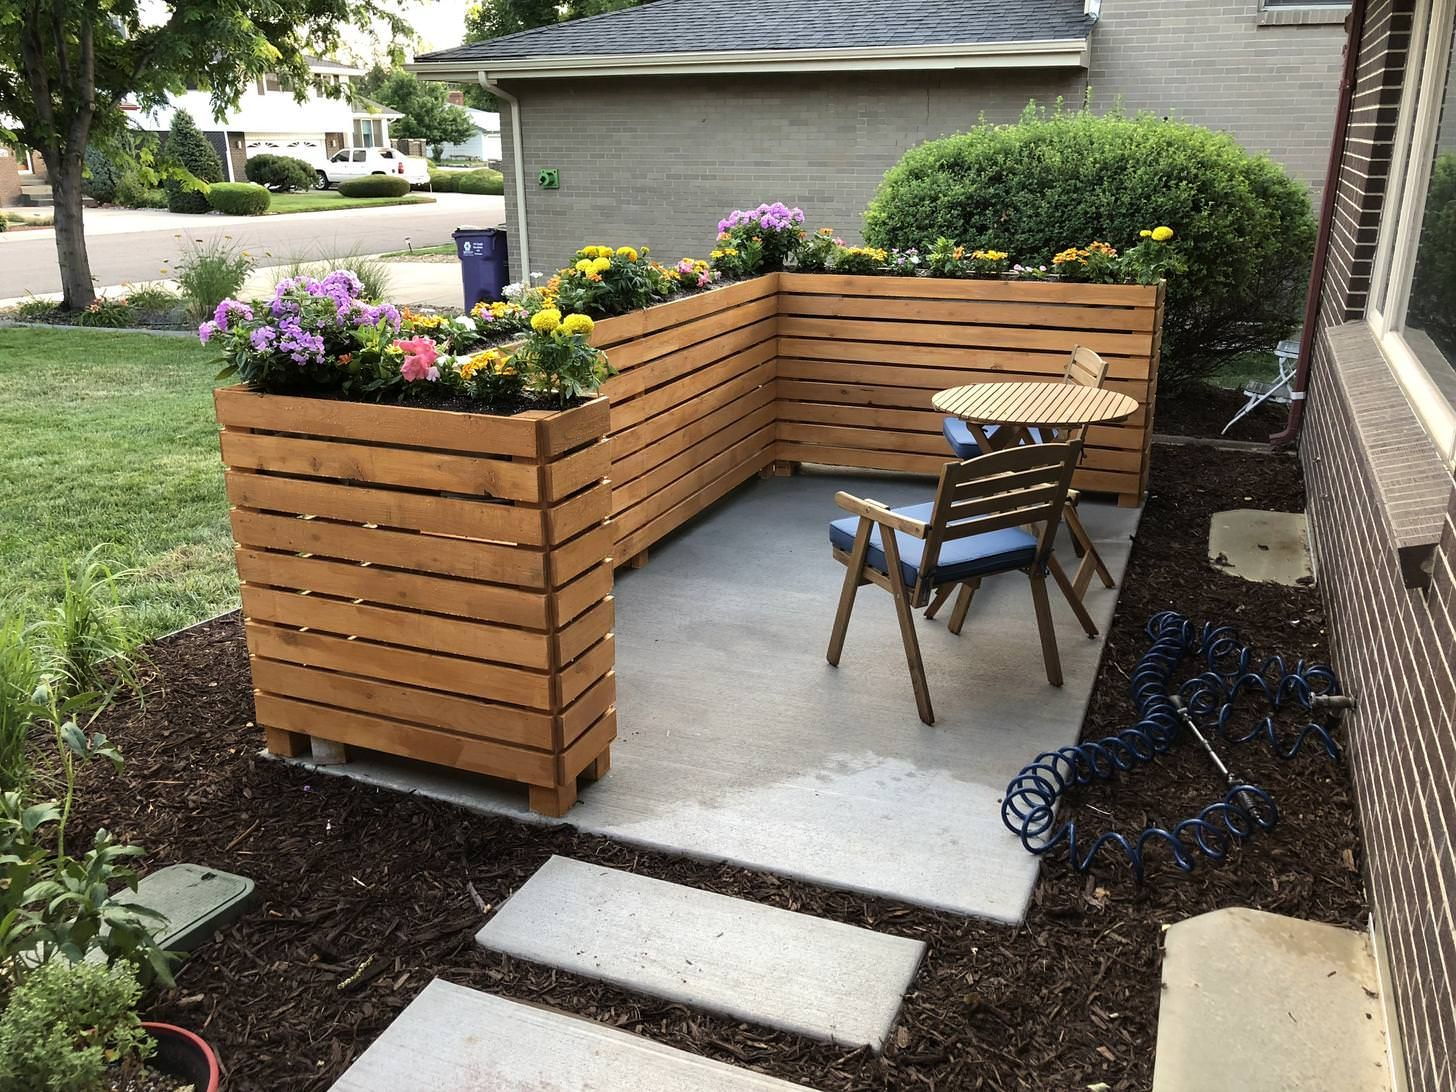 I Built A Slatted Privacy Planter Fence In My Front Yard During Some Time Off For The 4th Of July Album On I Front Yard Planters Yard Planters Patio Fence